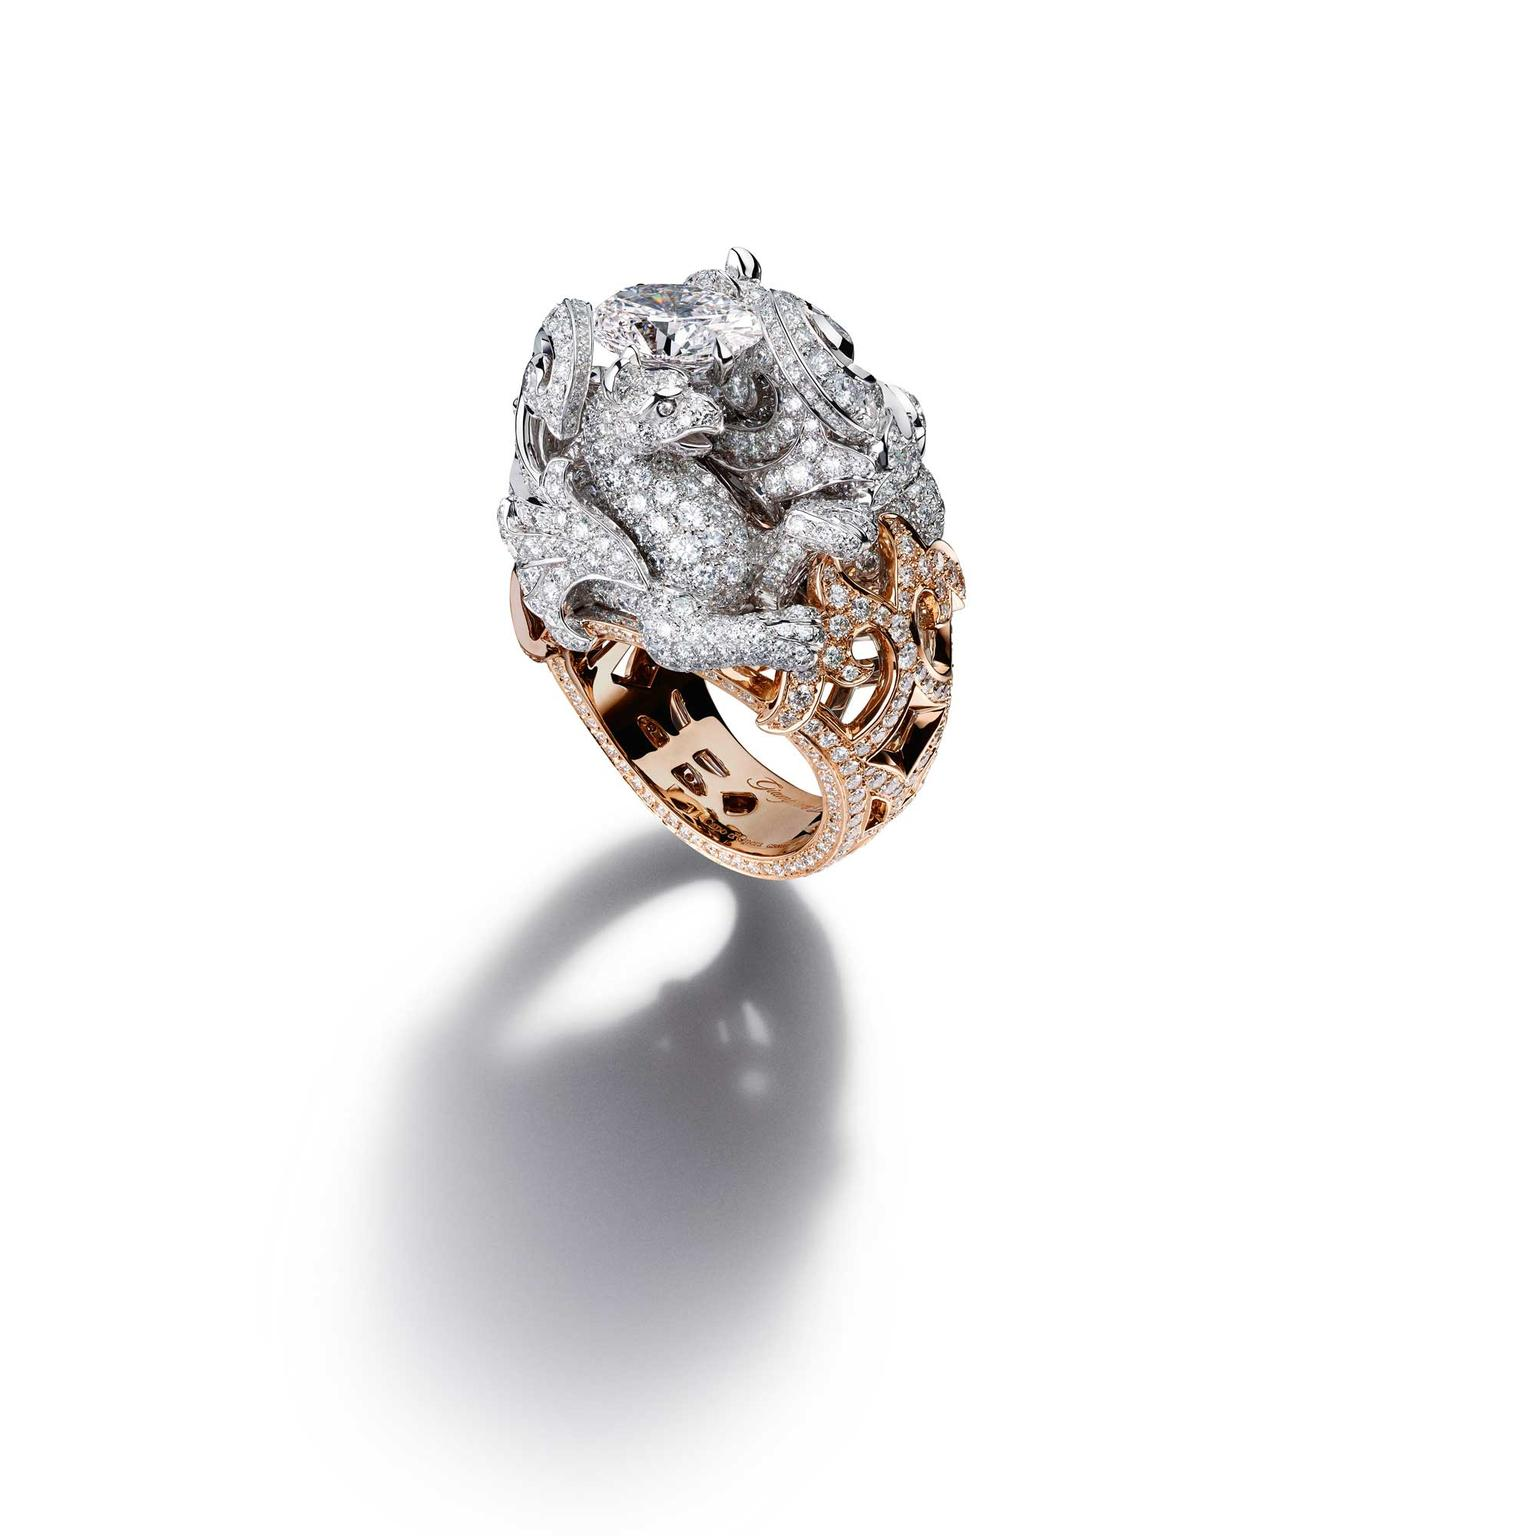 Giampiero Bodino Chimera diamond ring